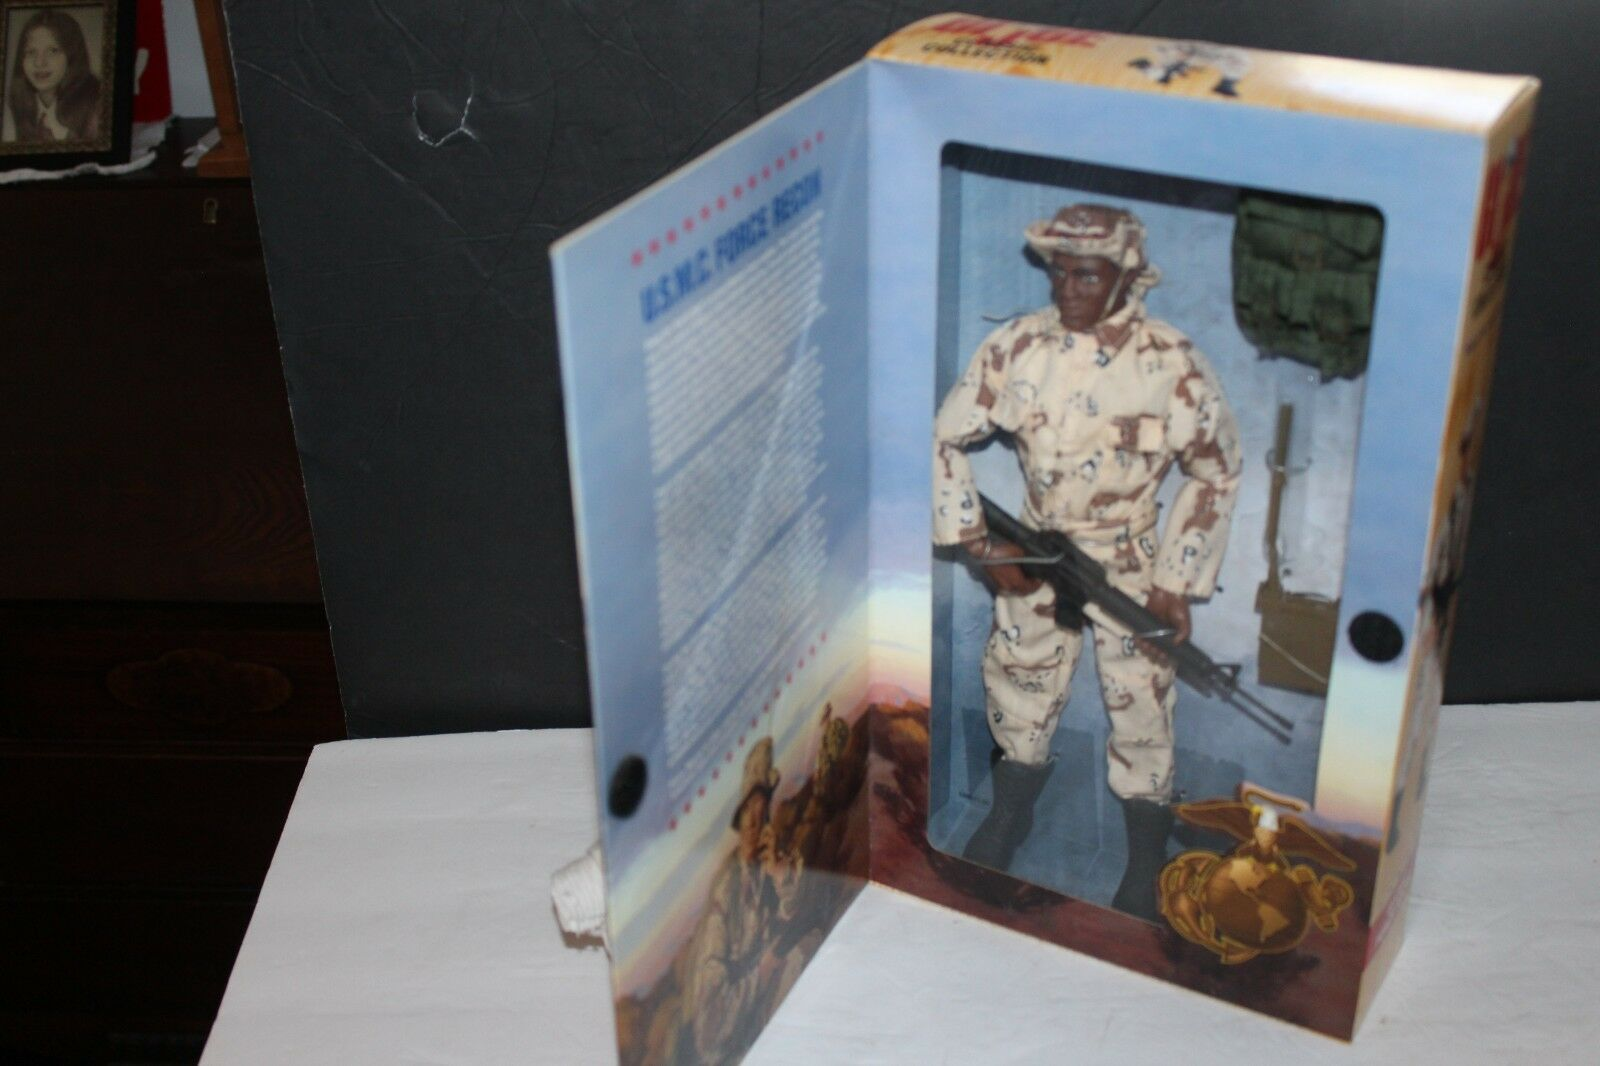 G.I. JOE CLASSIC COLLECTION US.M.C. AFRICAN AMERICAN FORCE RECON MIB